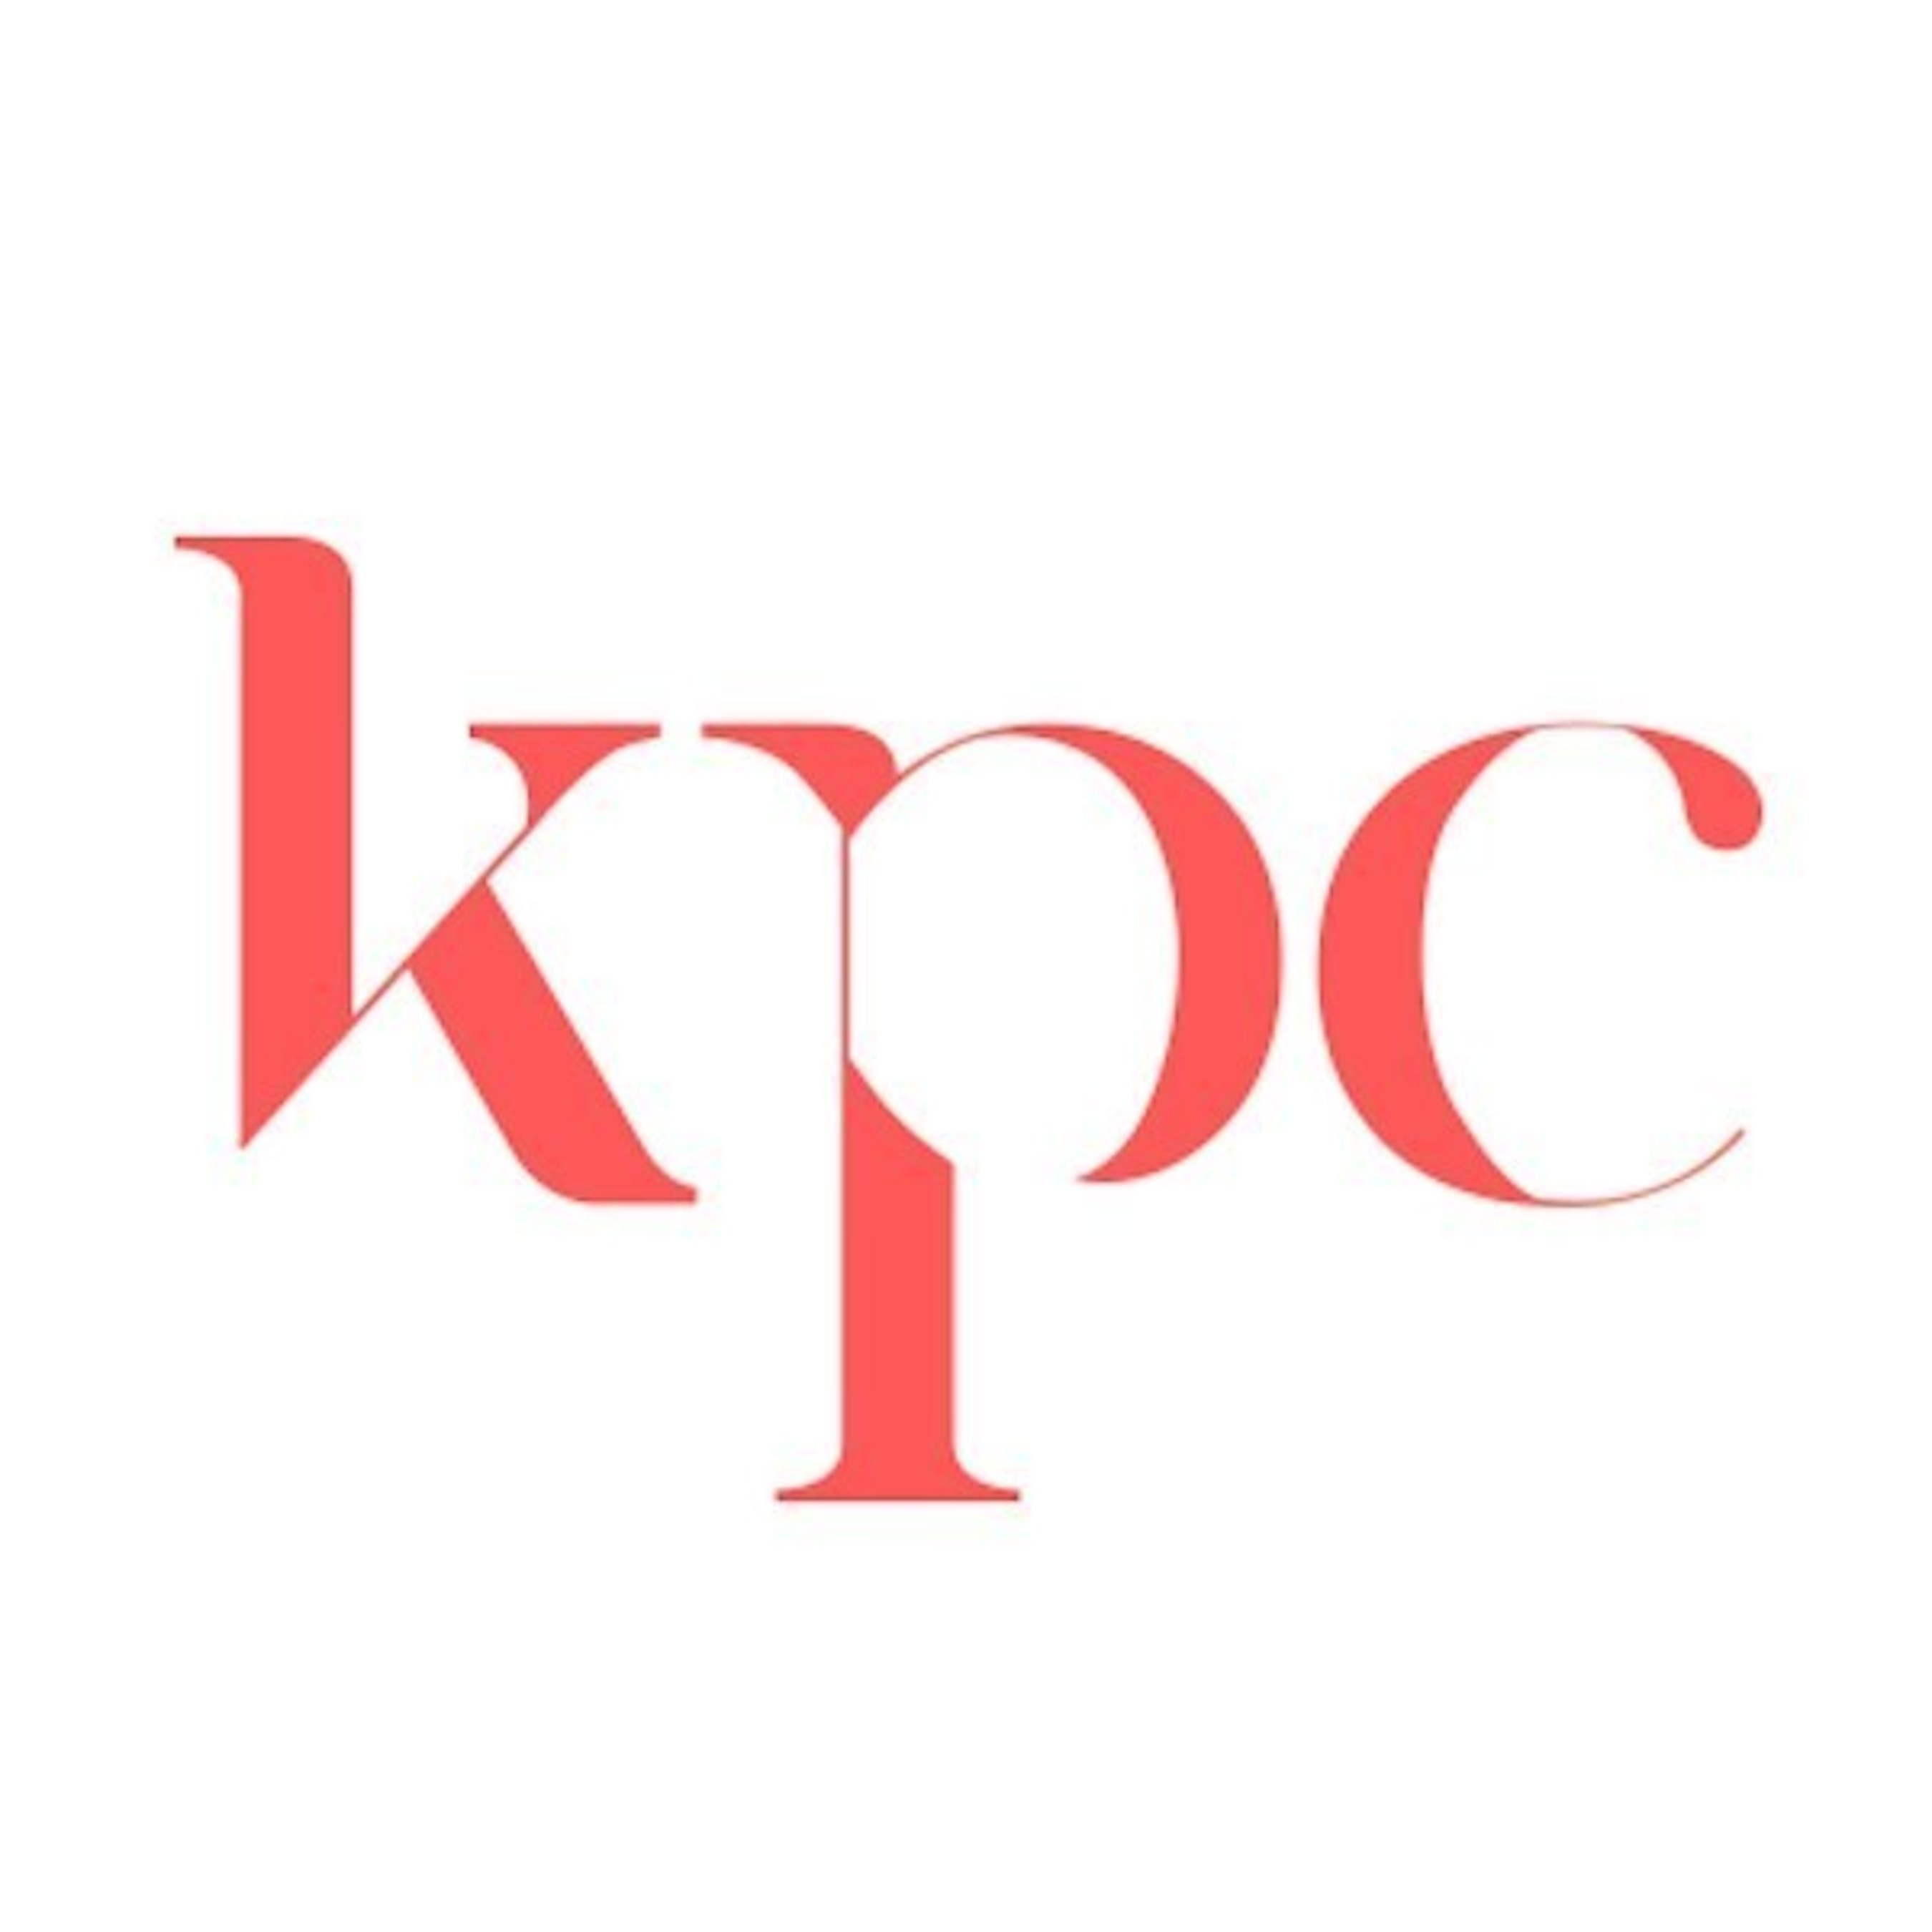 www.kparksconsulting.com